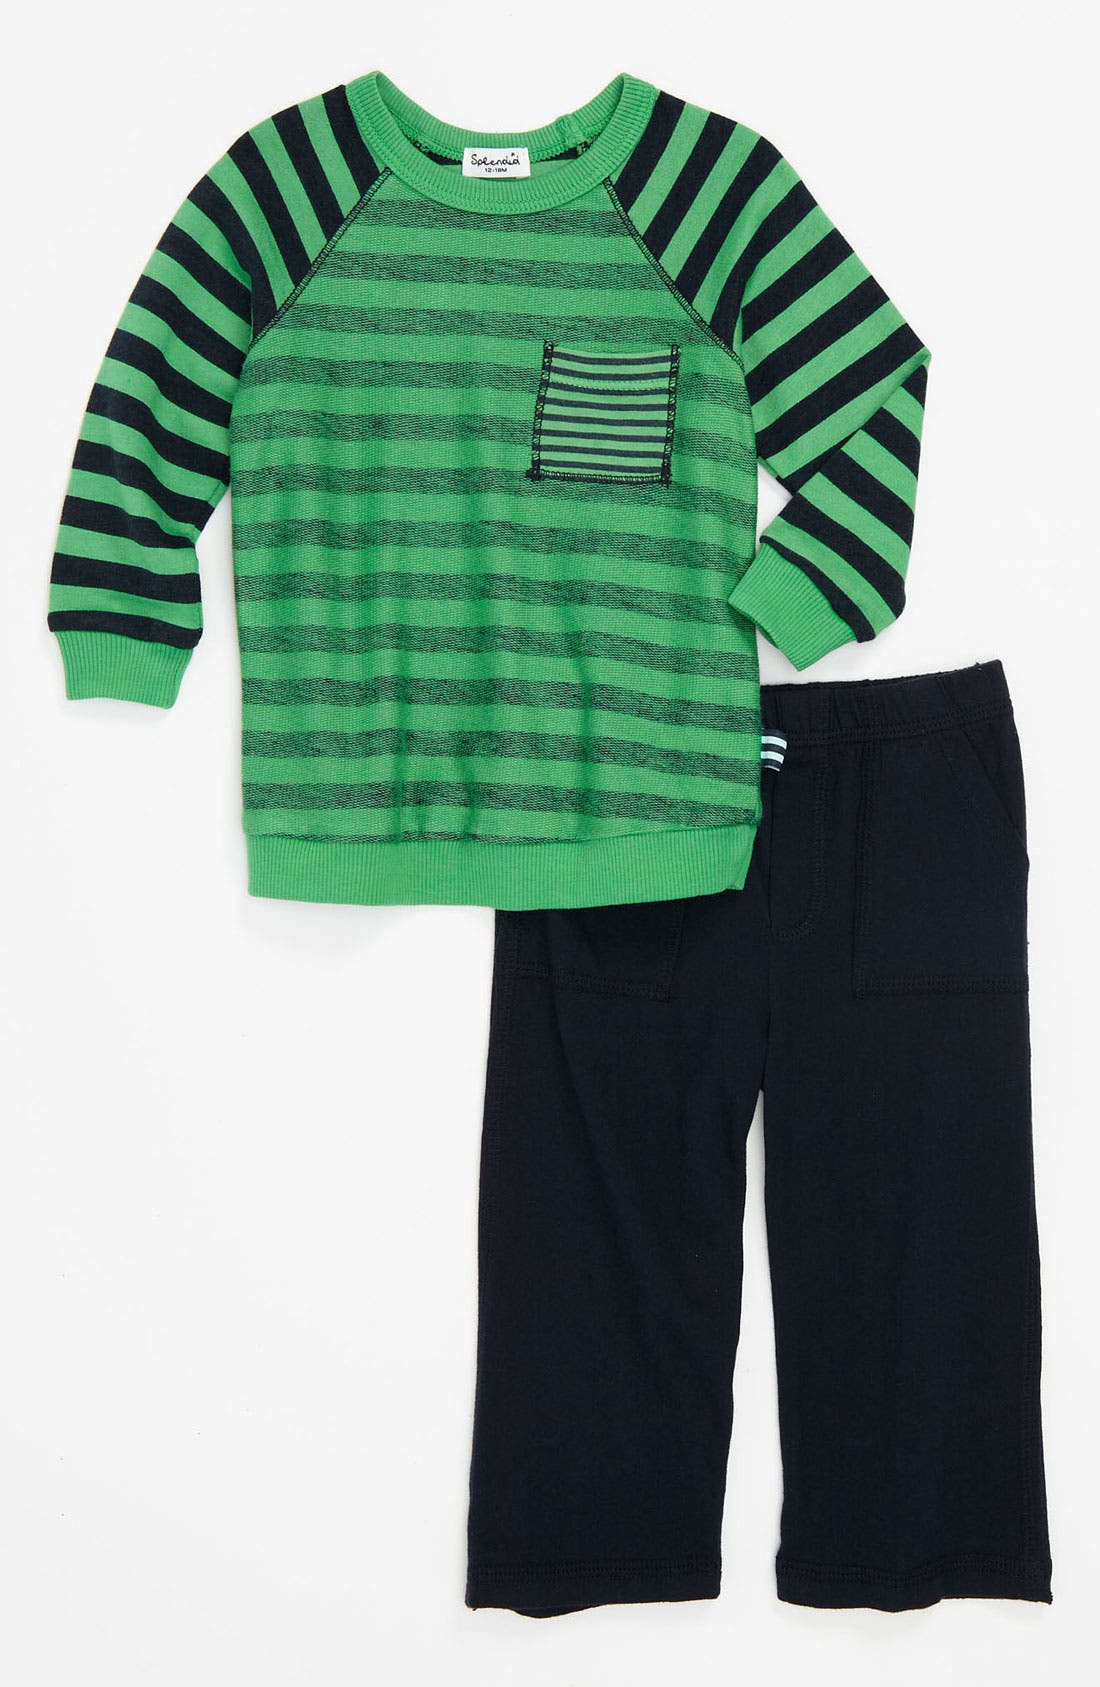 Alternate Image 1 Selected - Splendid Stripe Top & Knit Pants (Infant)